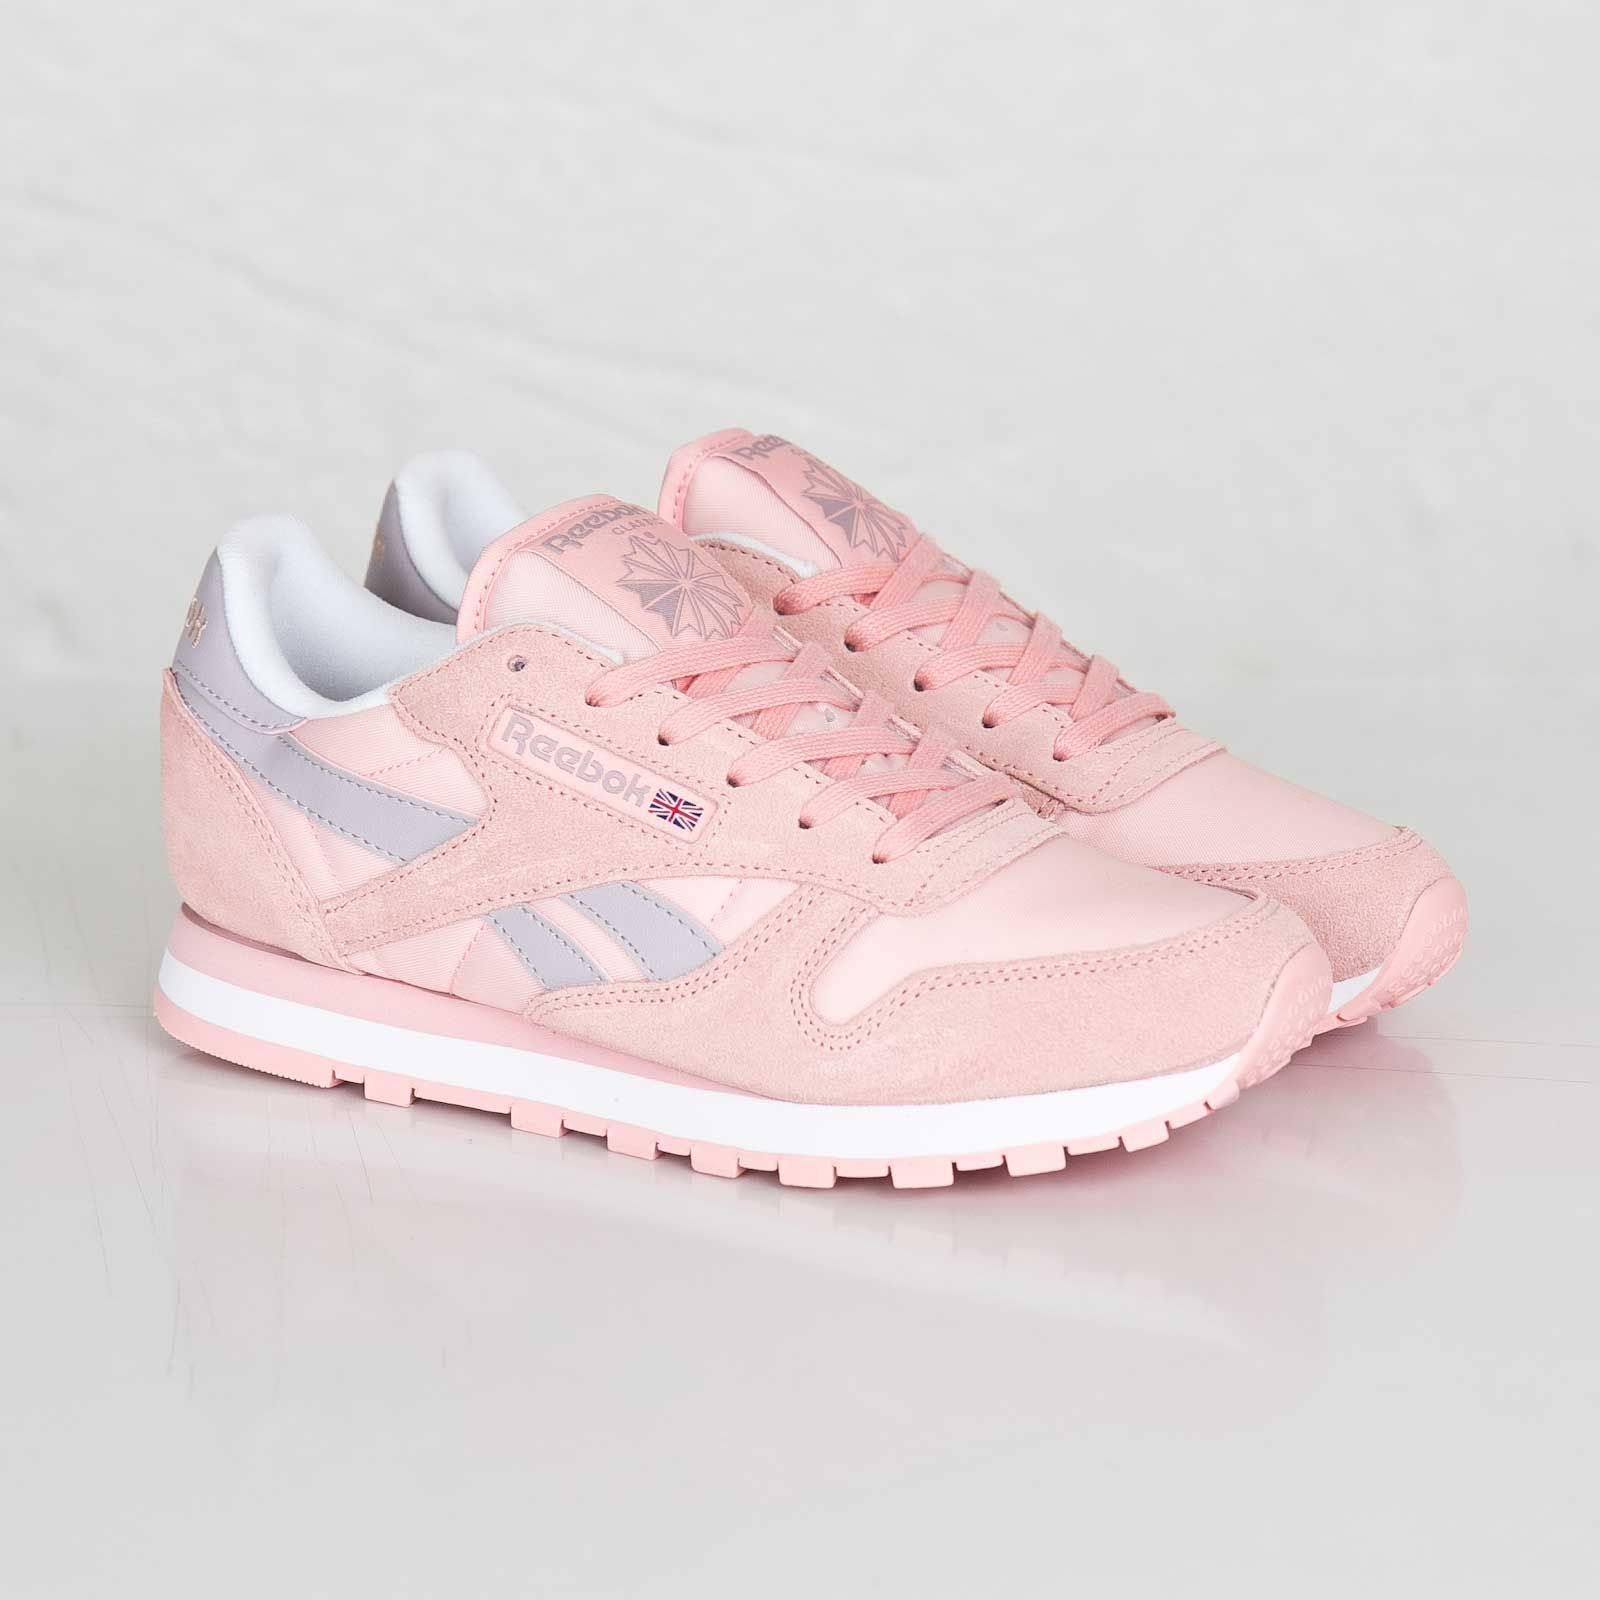 Reebok Classic Leather Seasonal I | Pés de princesa